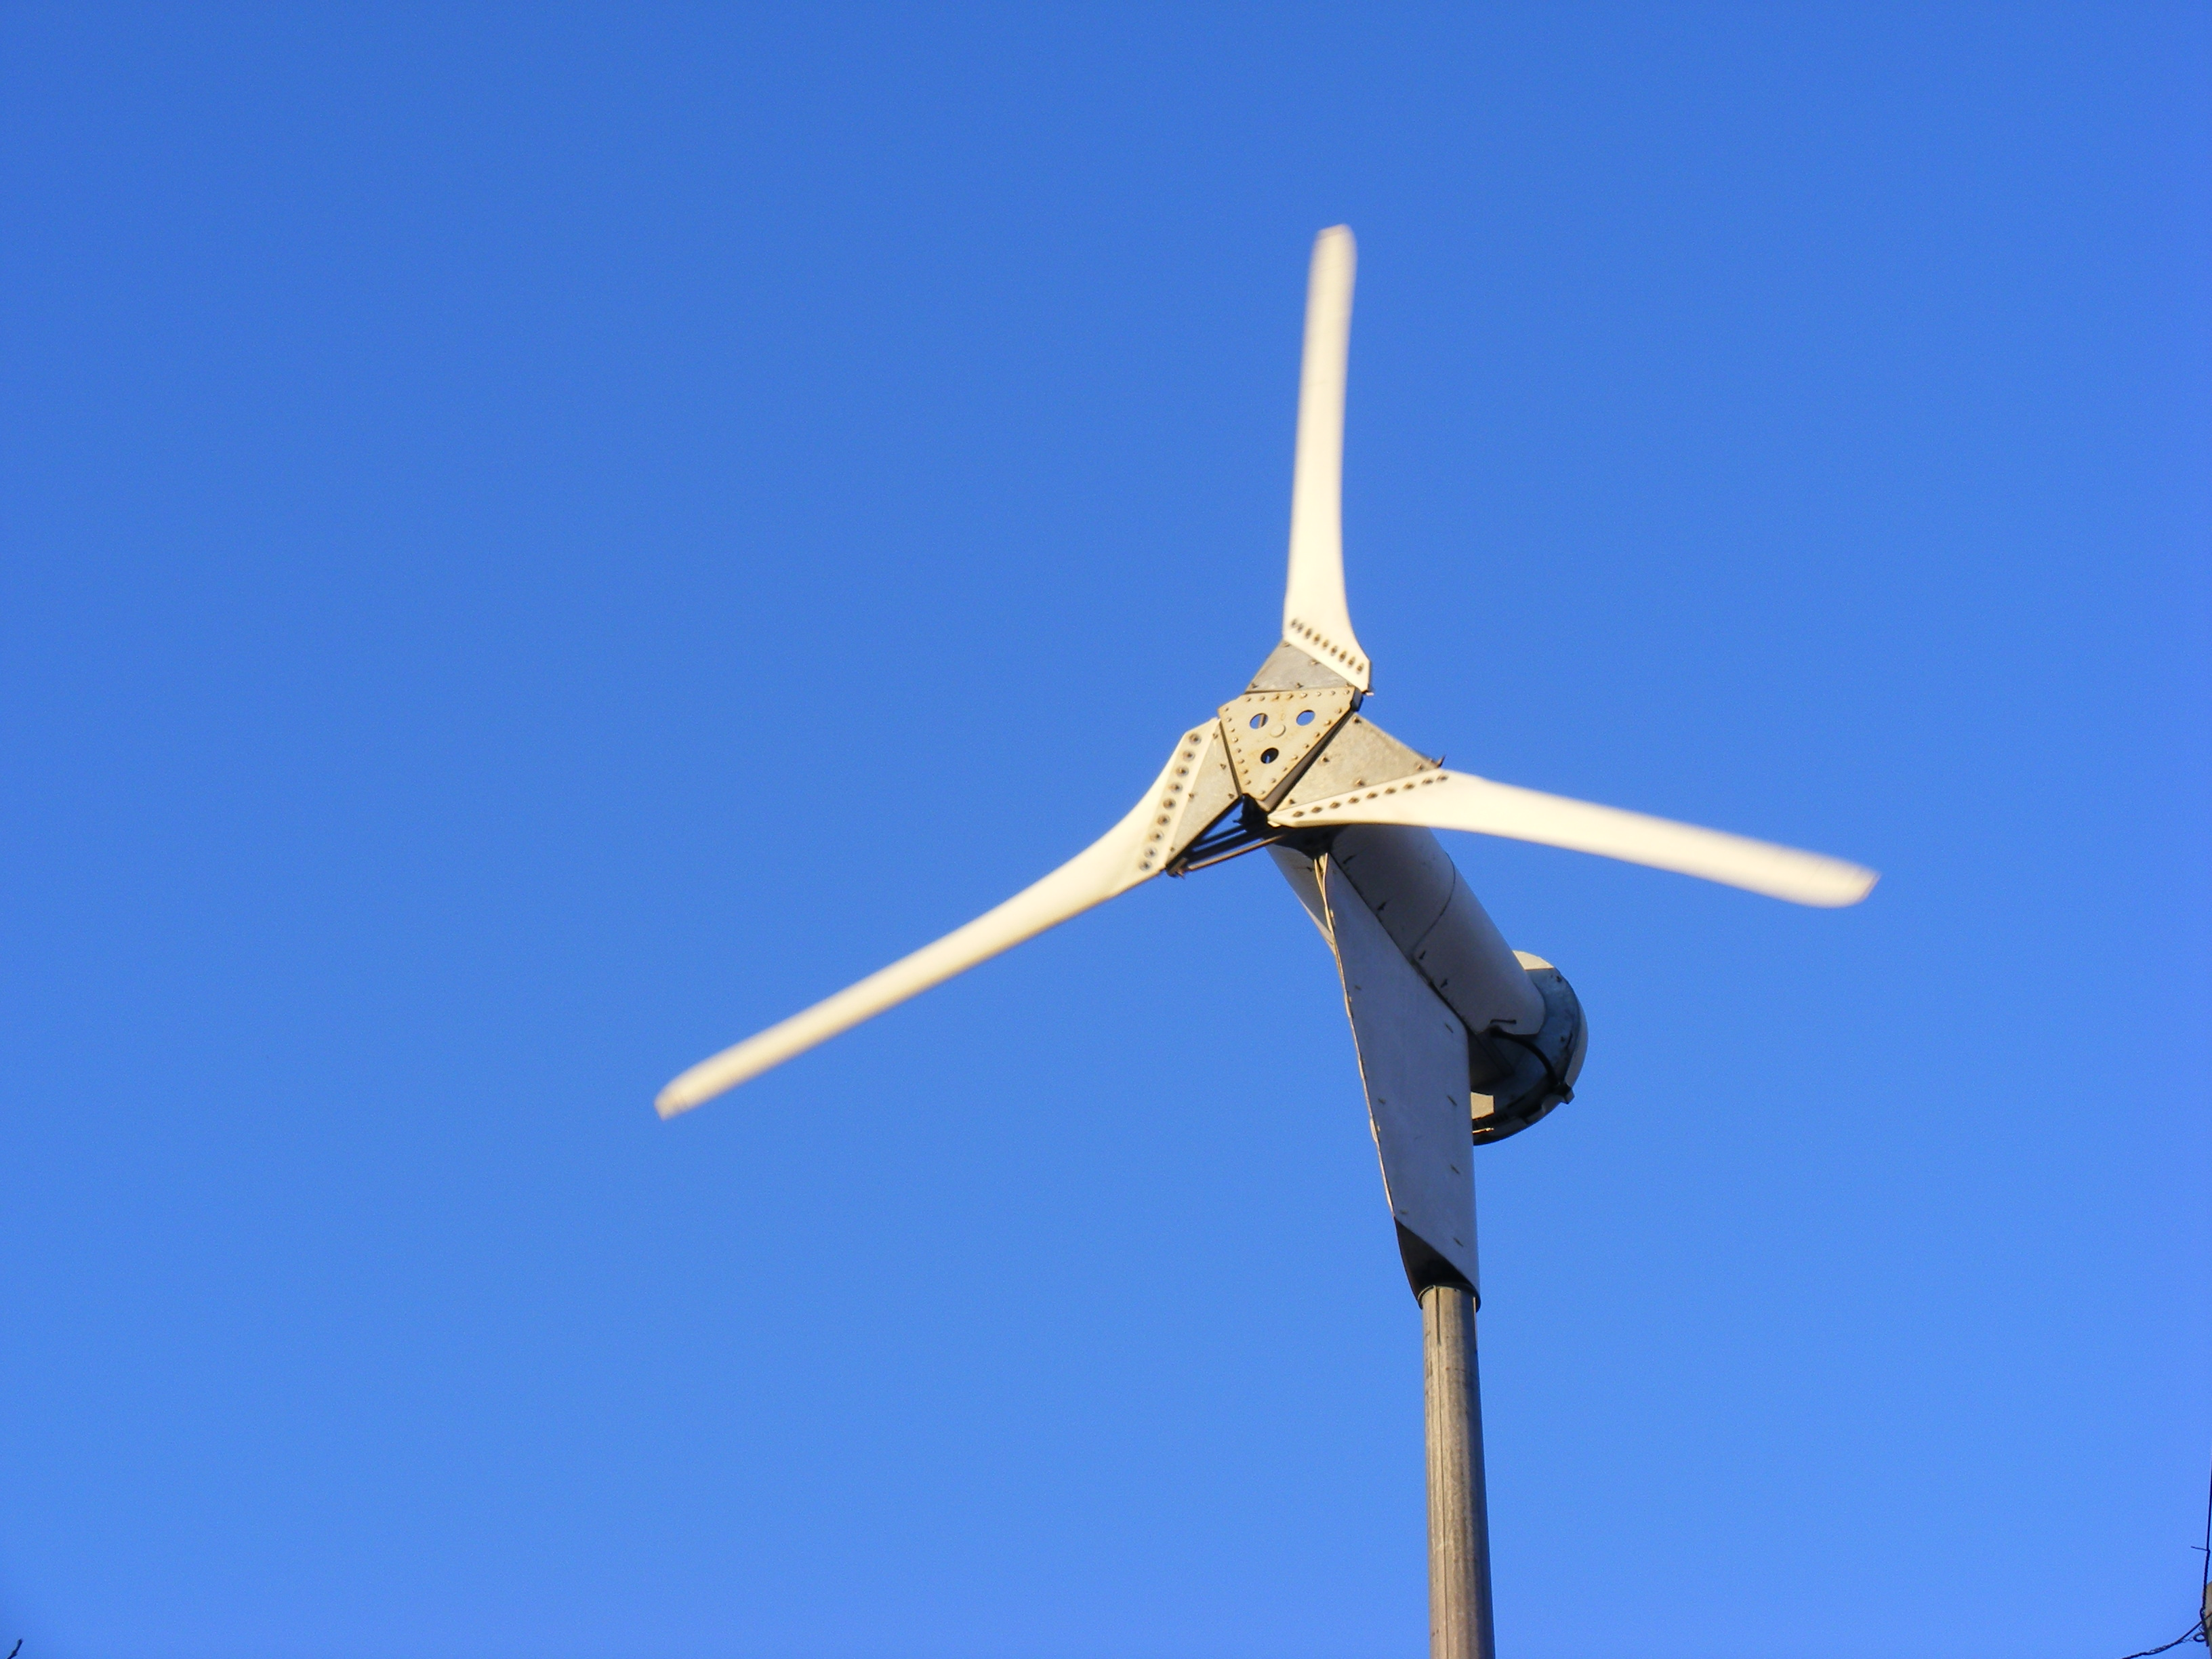 File:Proven 6kW small wind turbine.JPG - Wikimedia Commons